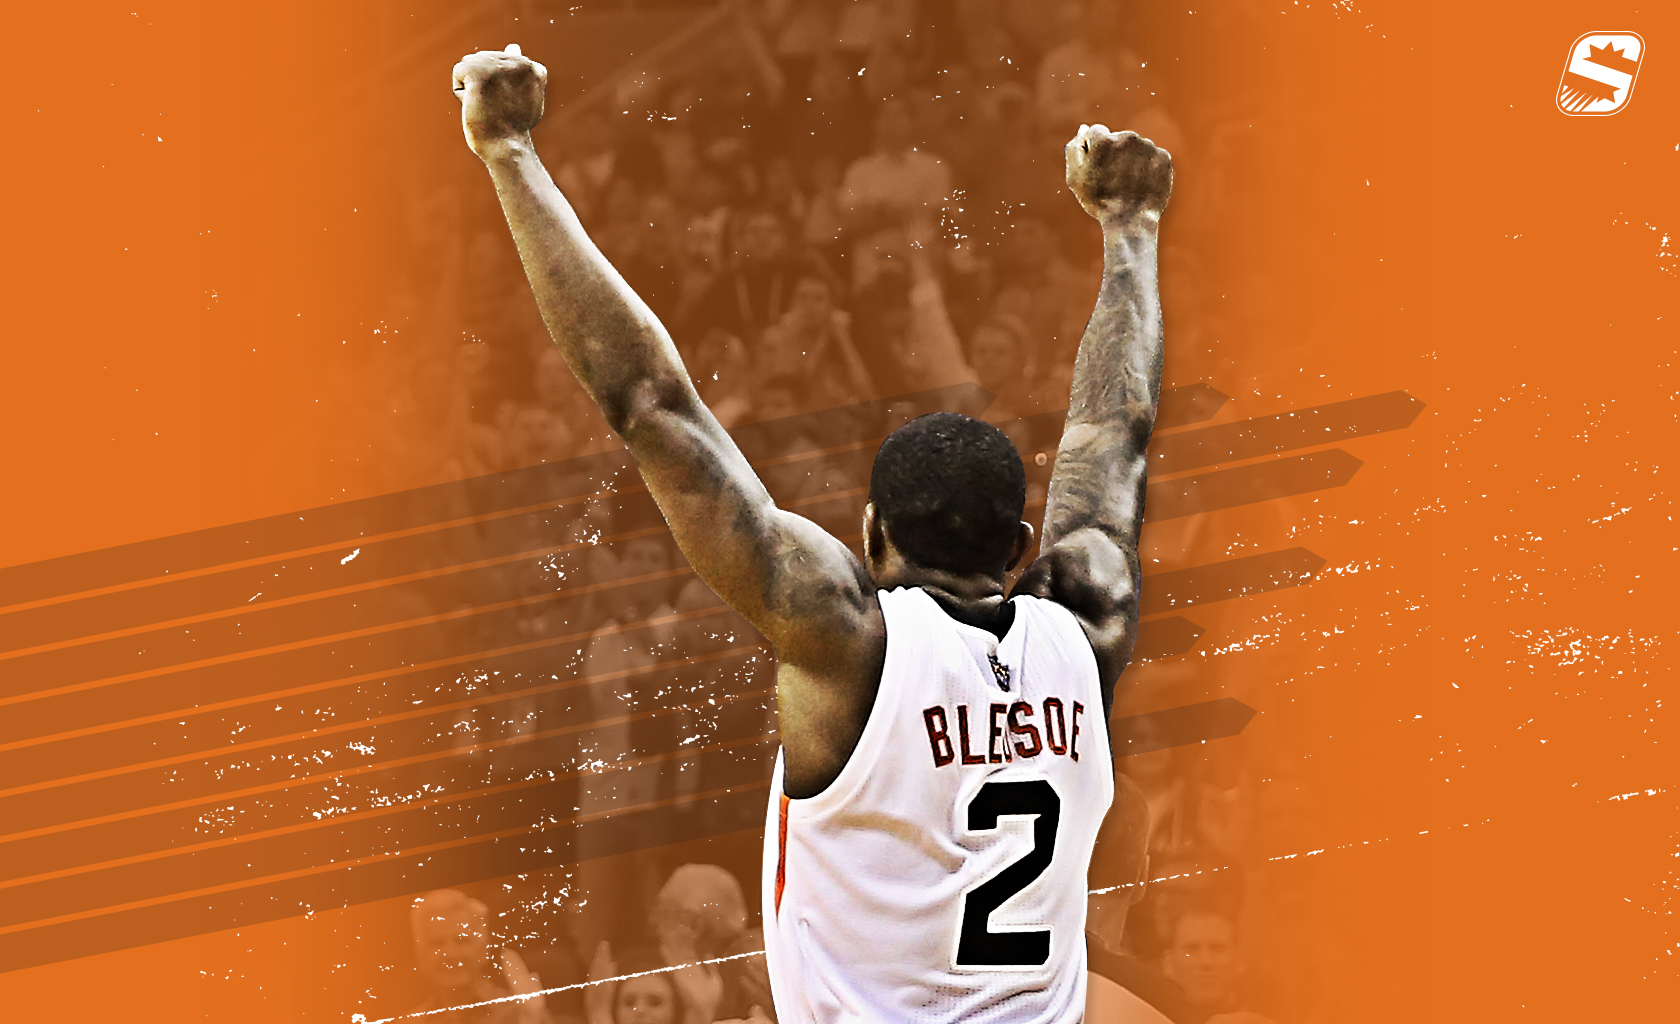 HD Eric Bledsoe Wallpapers 1680x1024